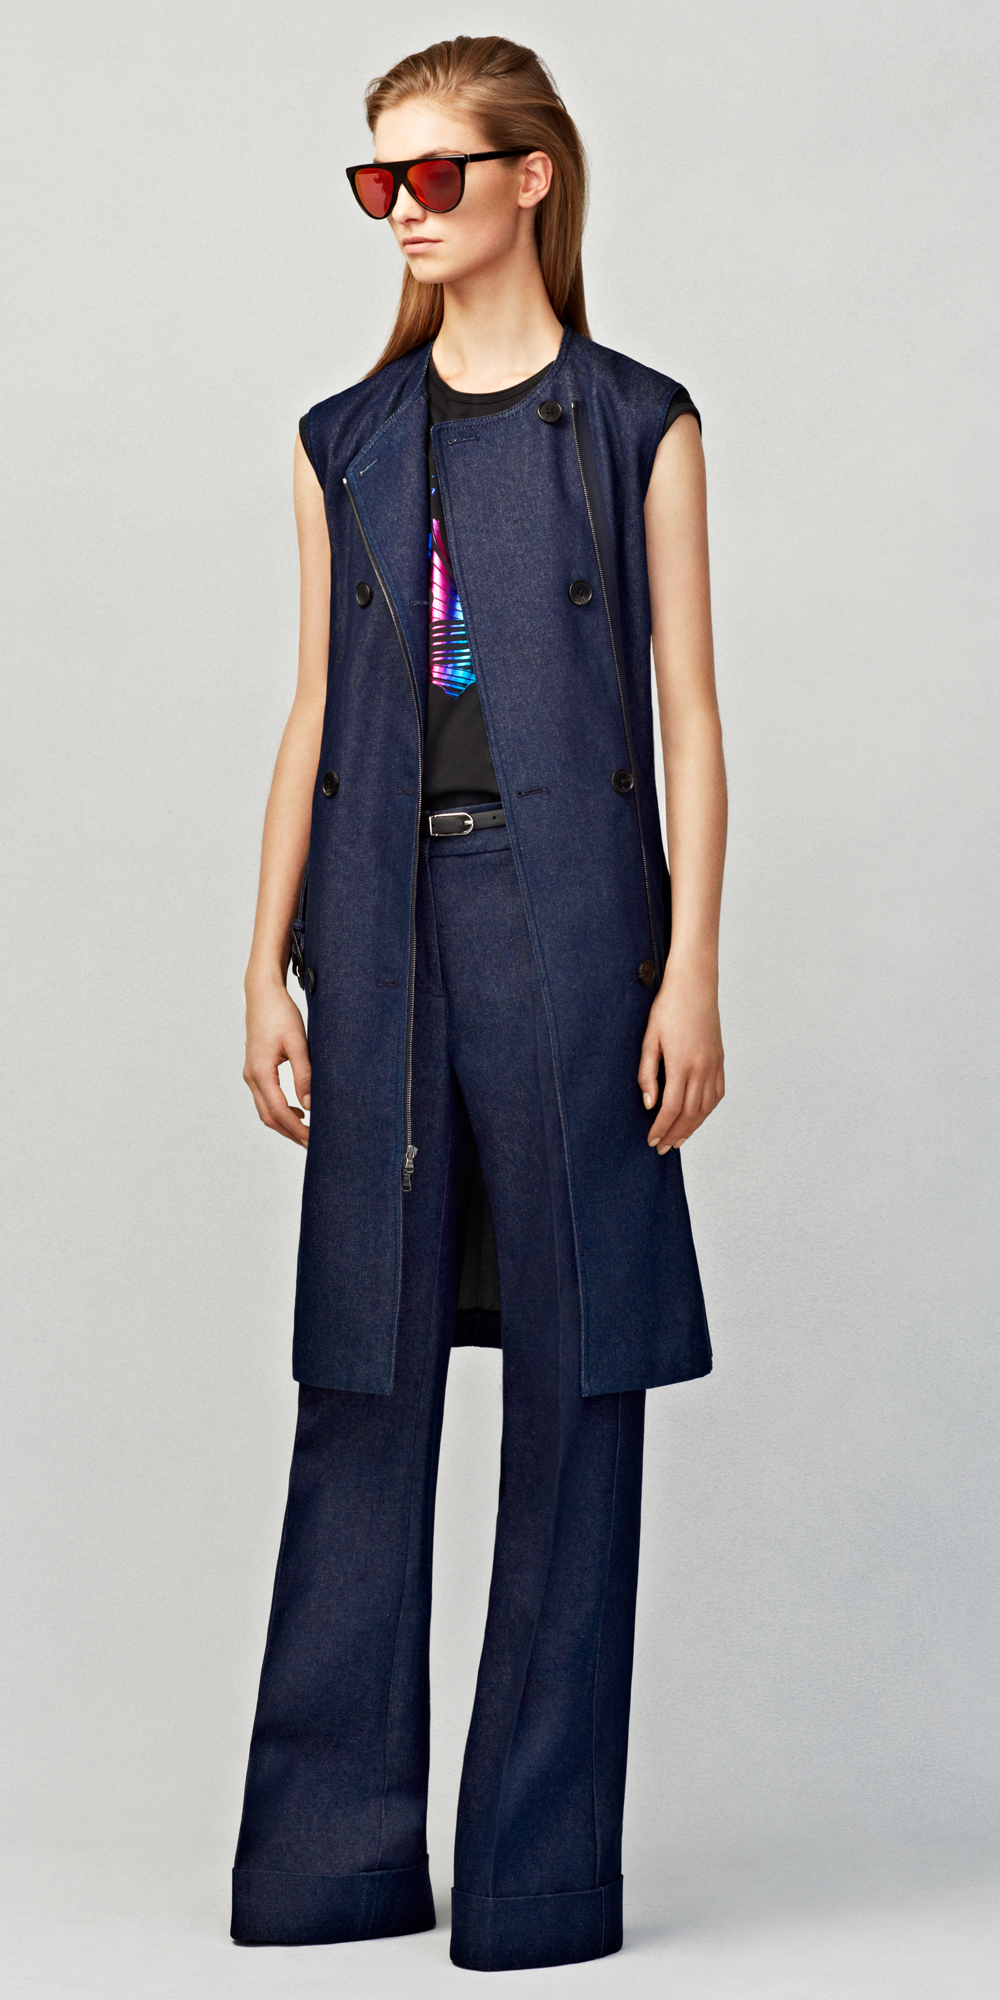 Phillip_Lim_denim_capsule_04.jpg